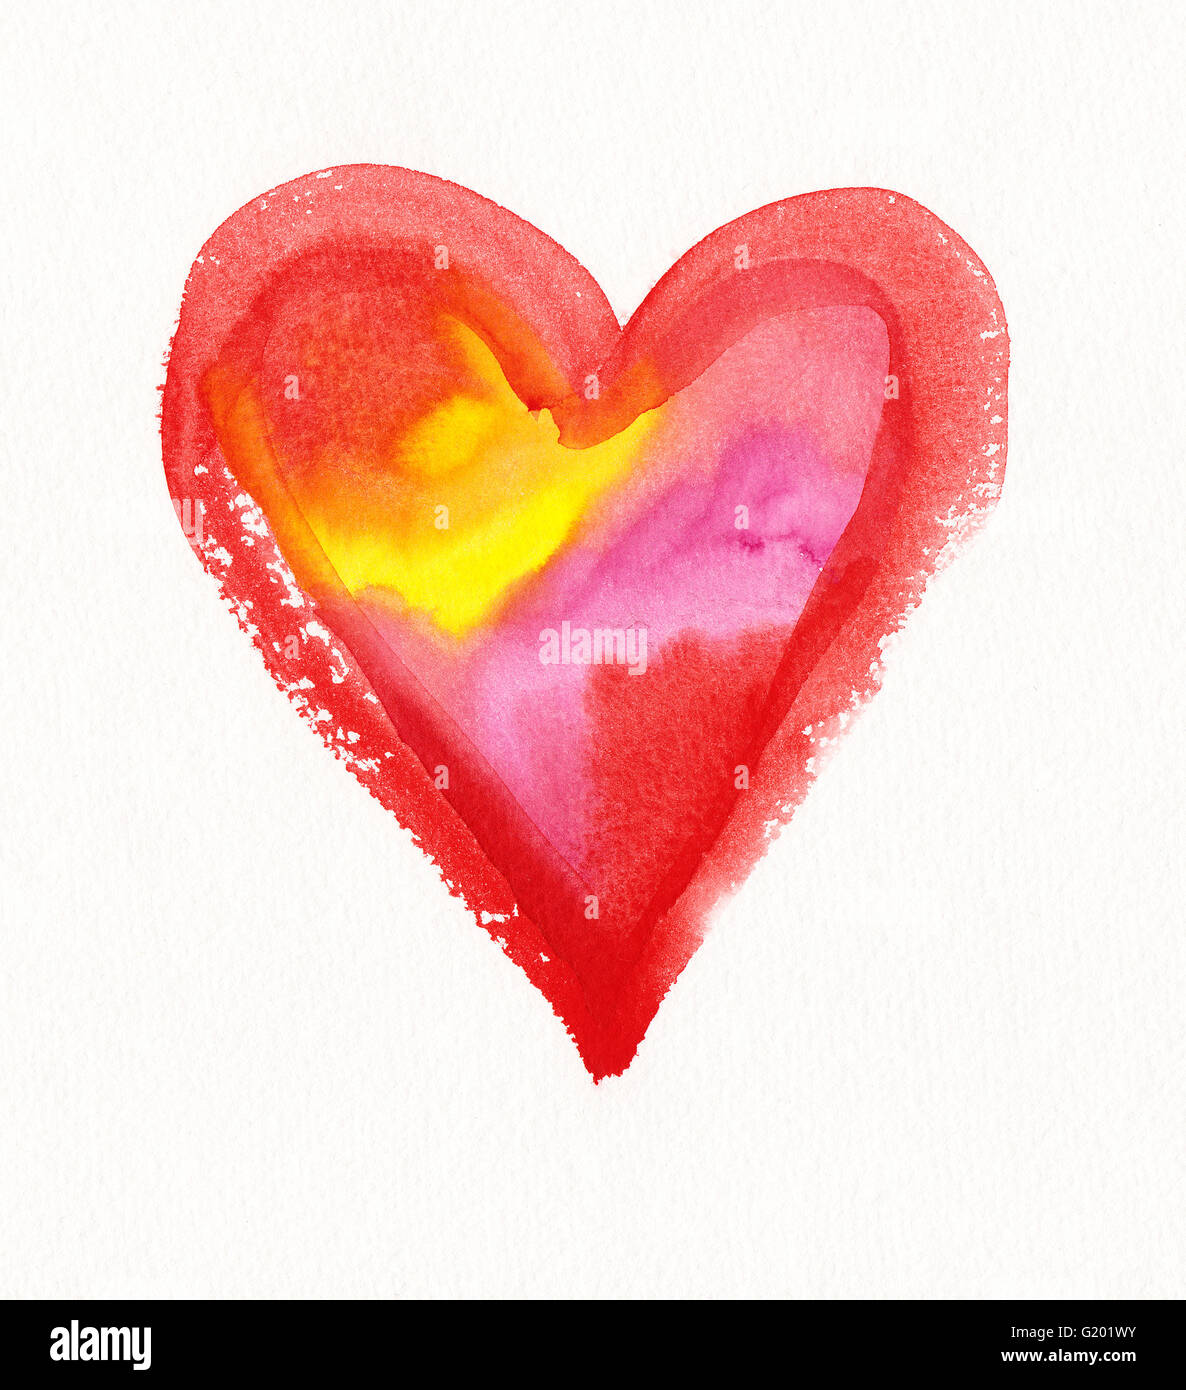 Color filled heart watercolor painting - Stock Image